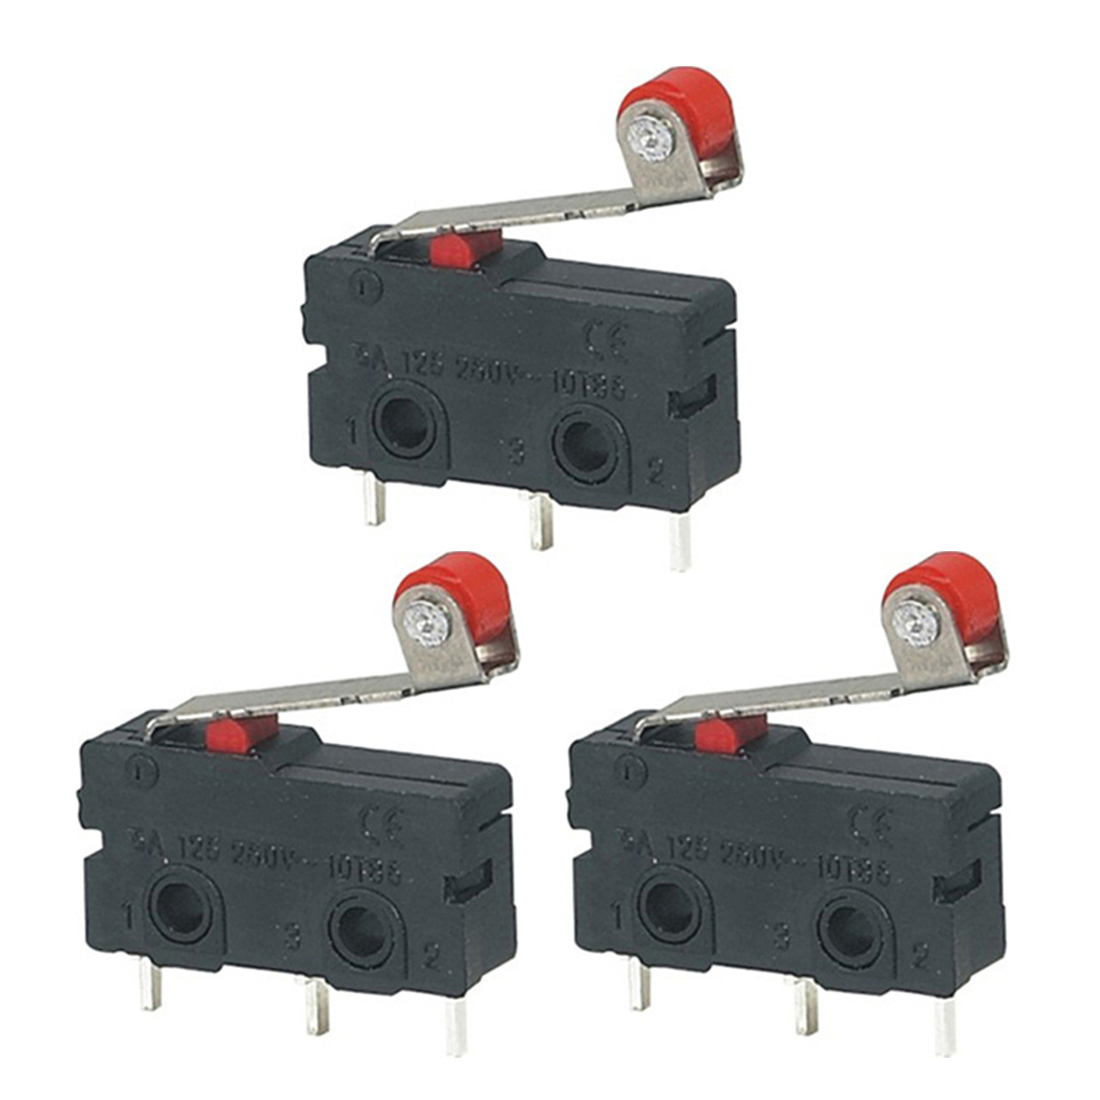 10Pcs//Set Micro Roller Lever Arm Open Close Limit Switch KW12-3 PCB Microswitch